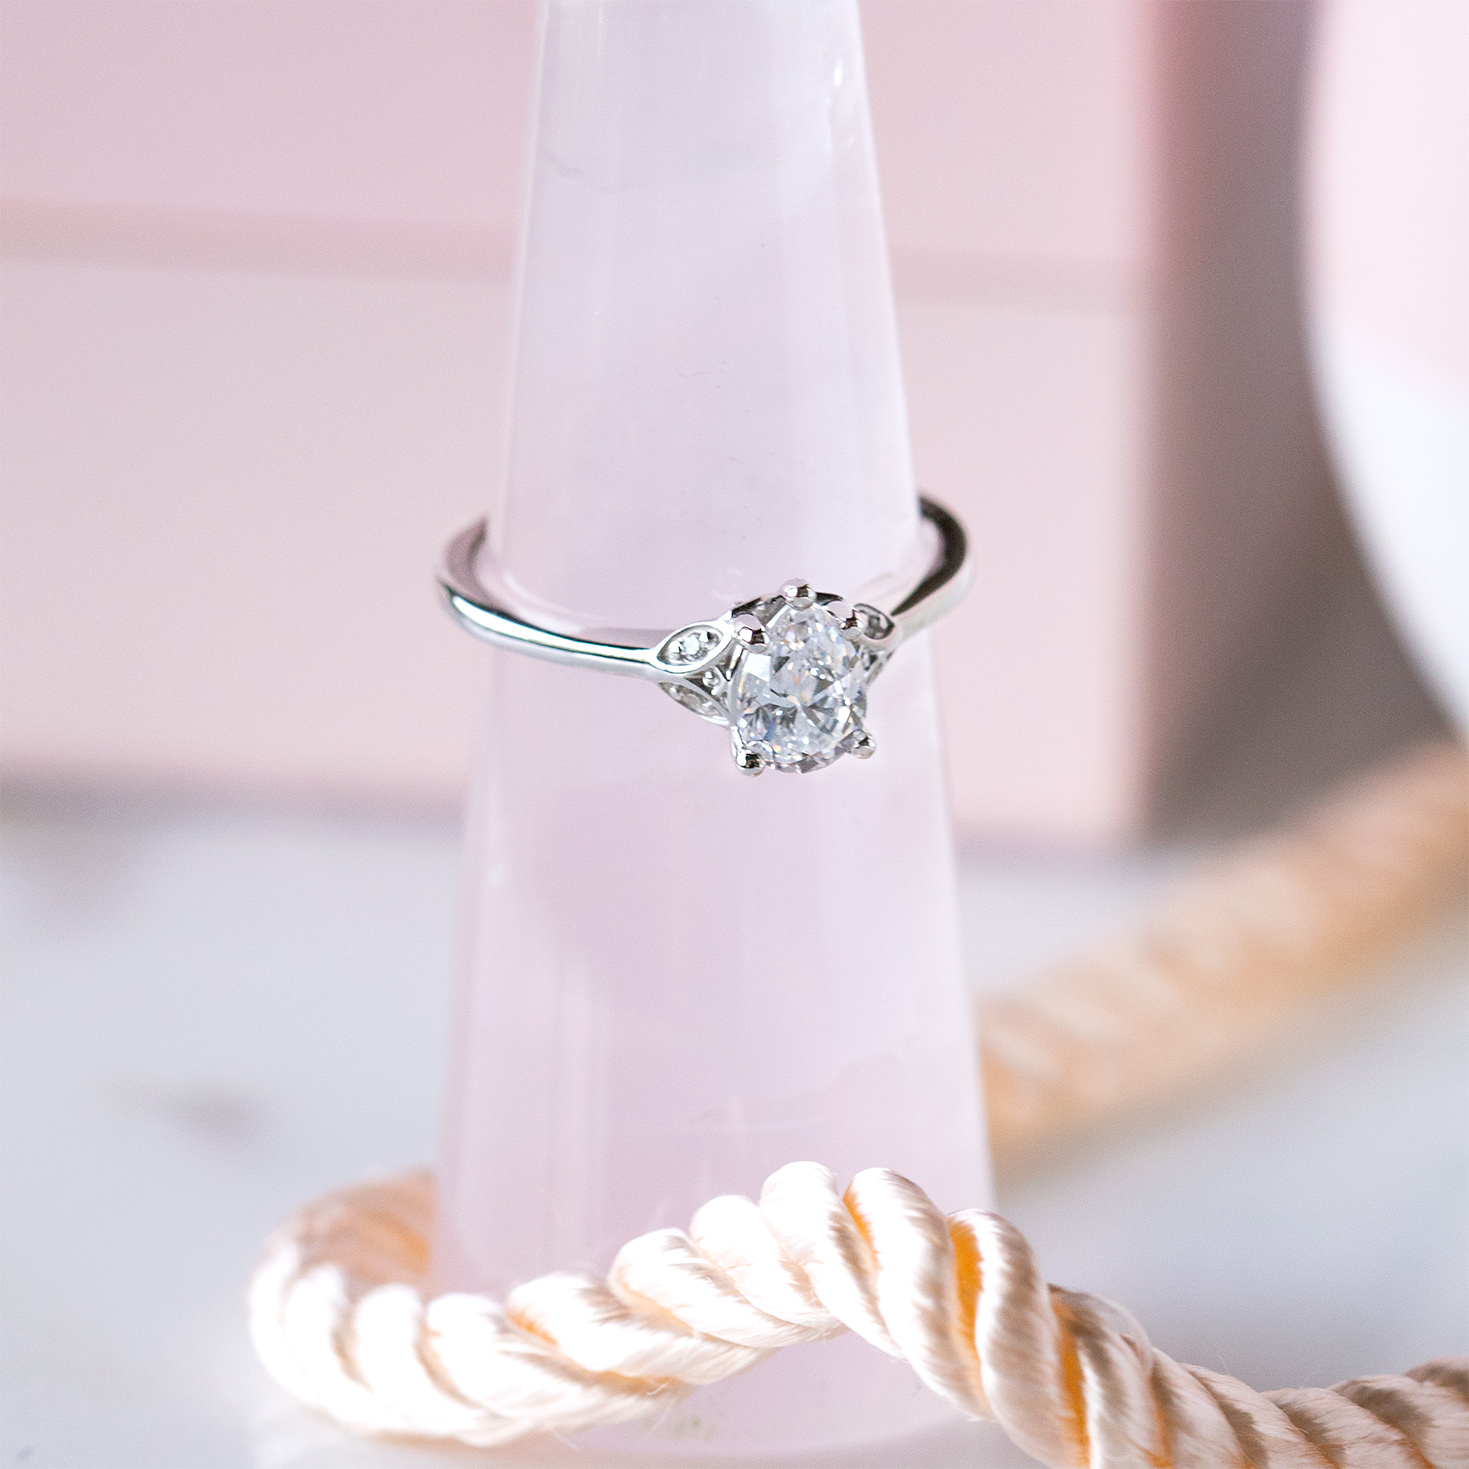 A white gold pear cut engagement ring